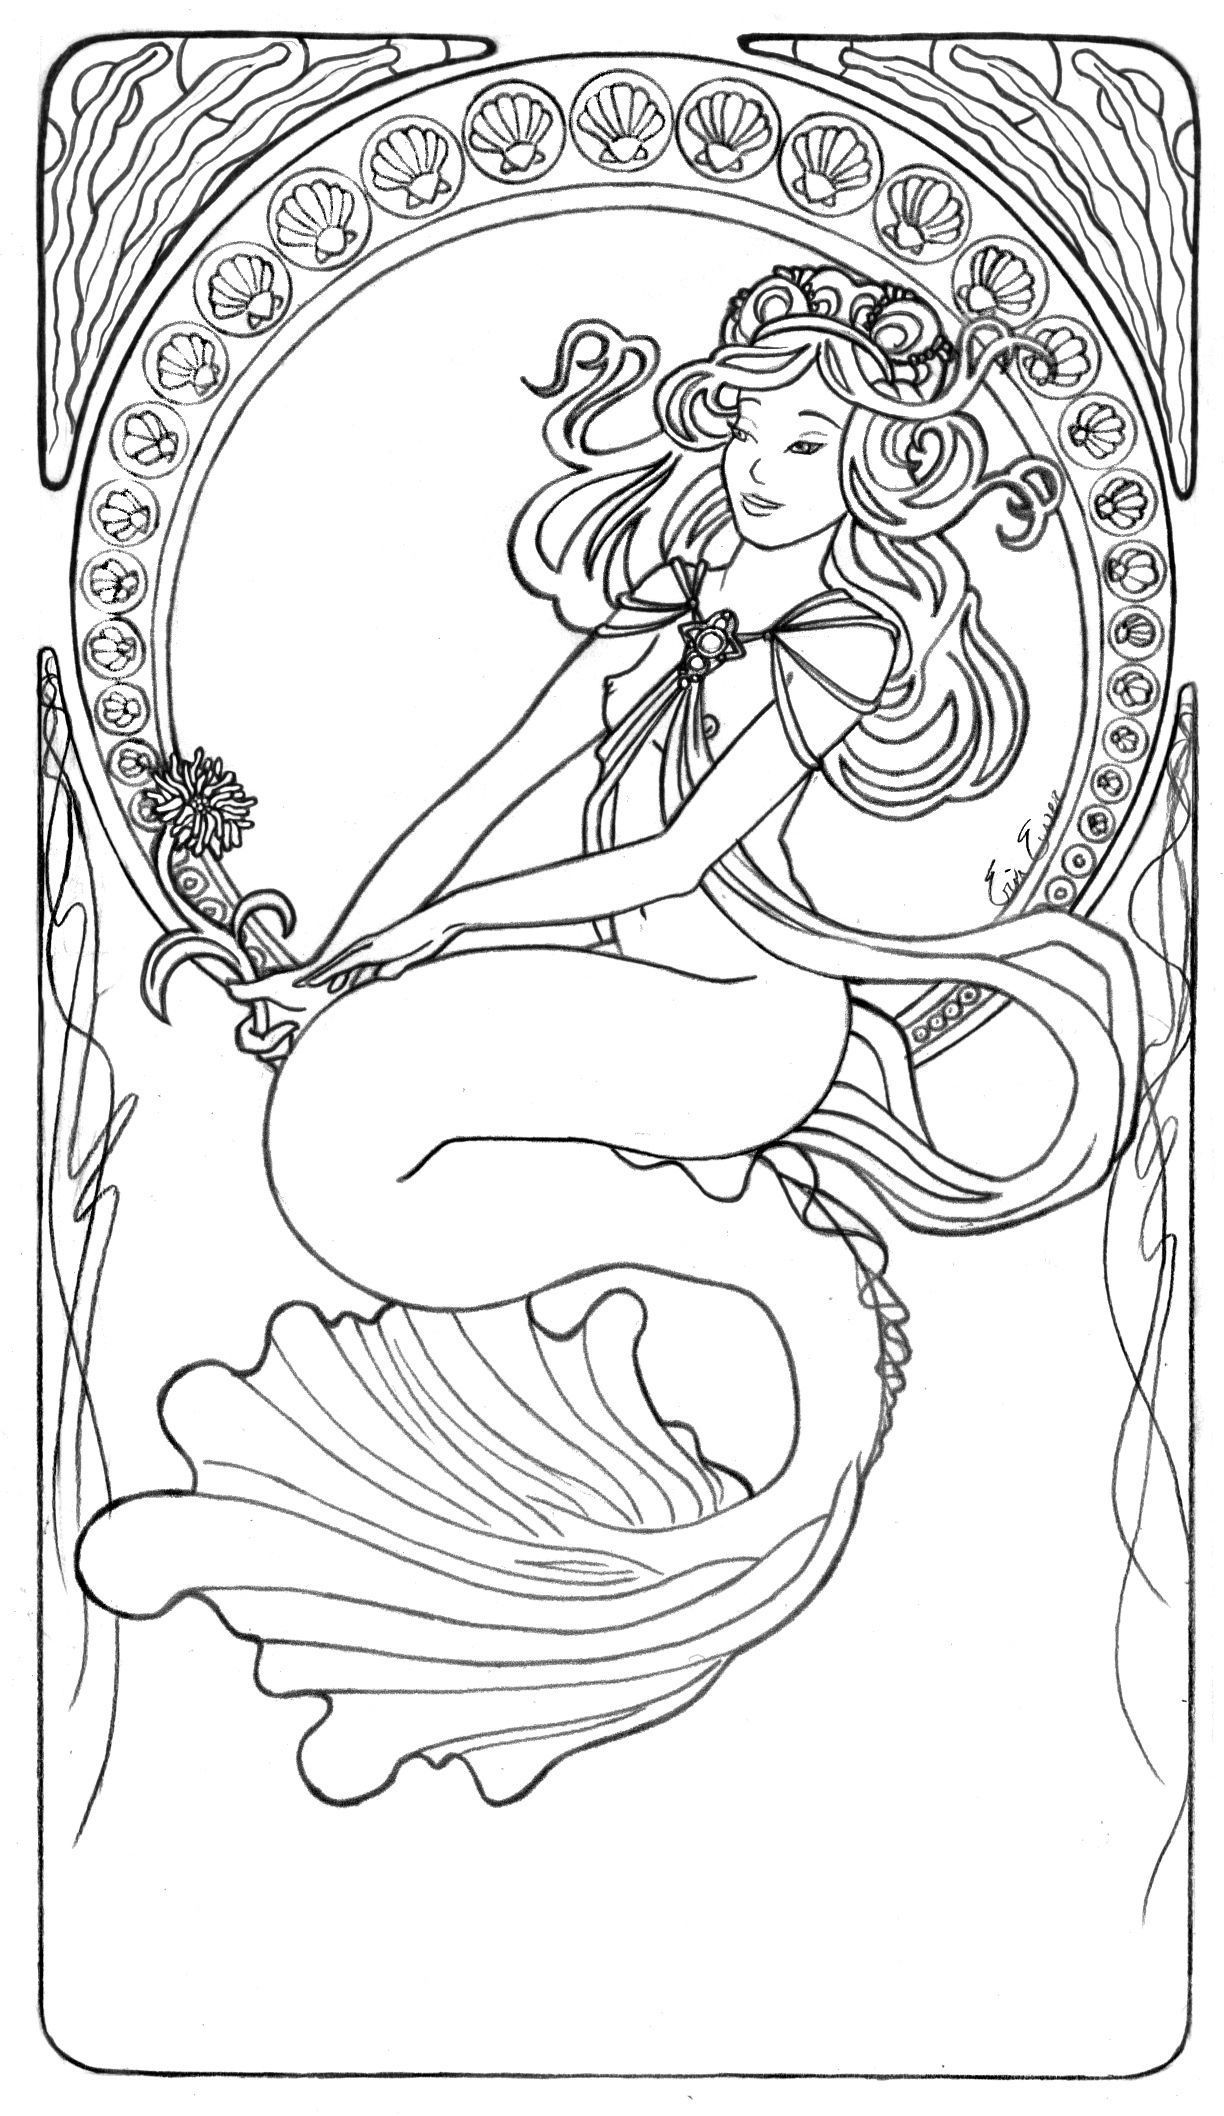 free coloring pages printable for adults | coloring page | kid